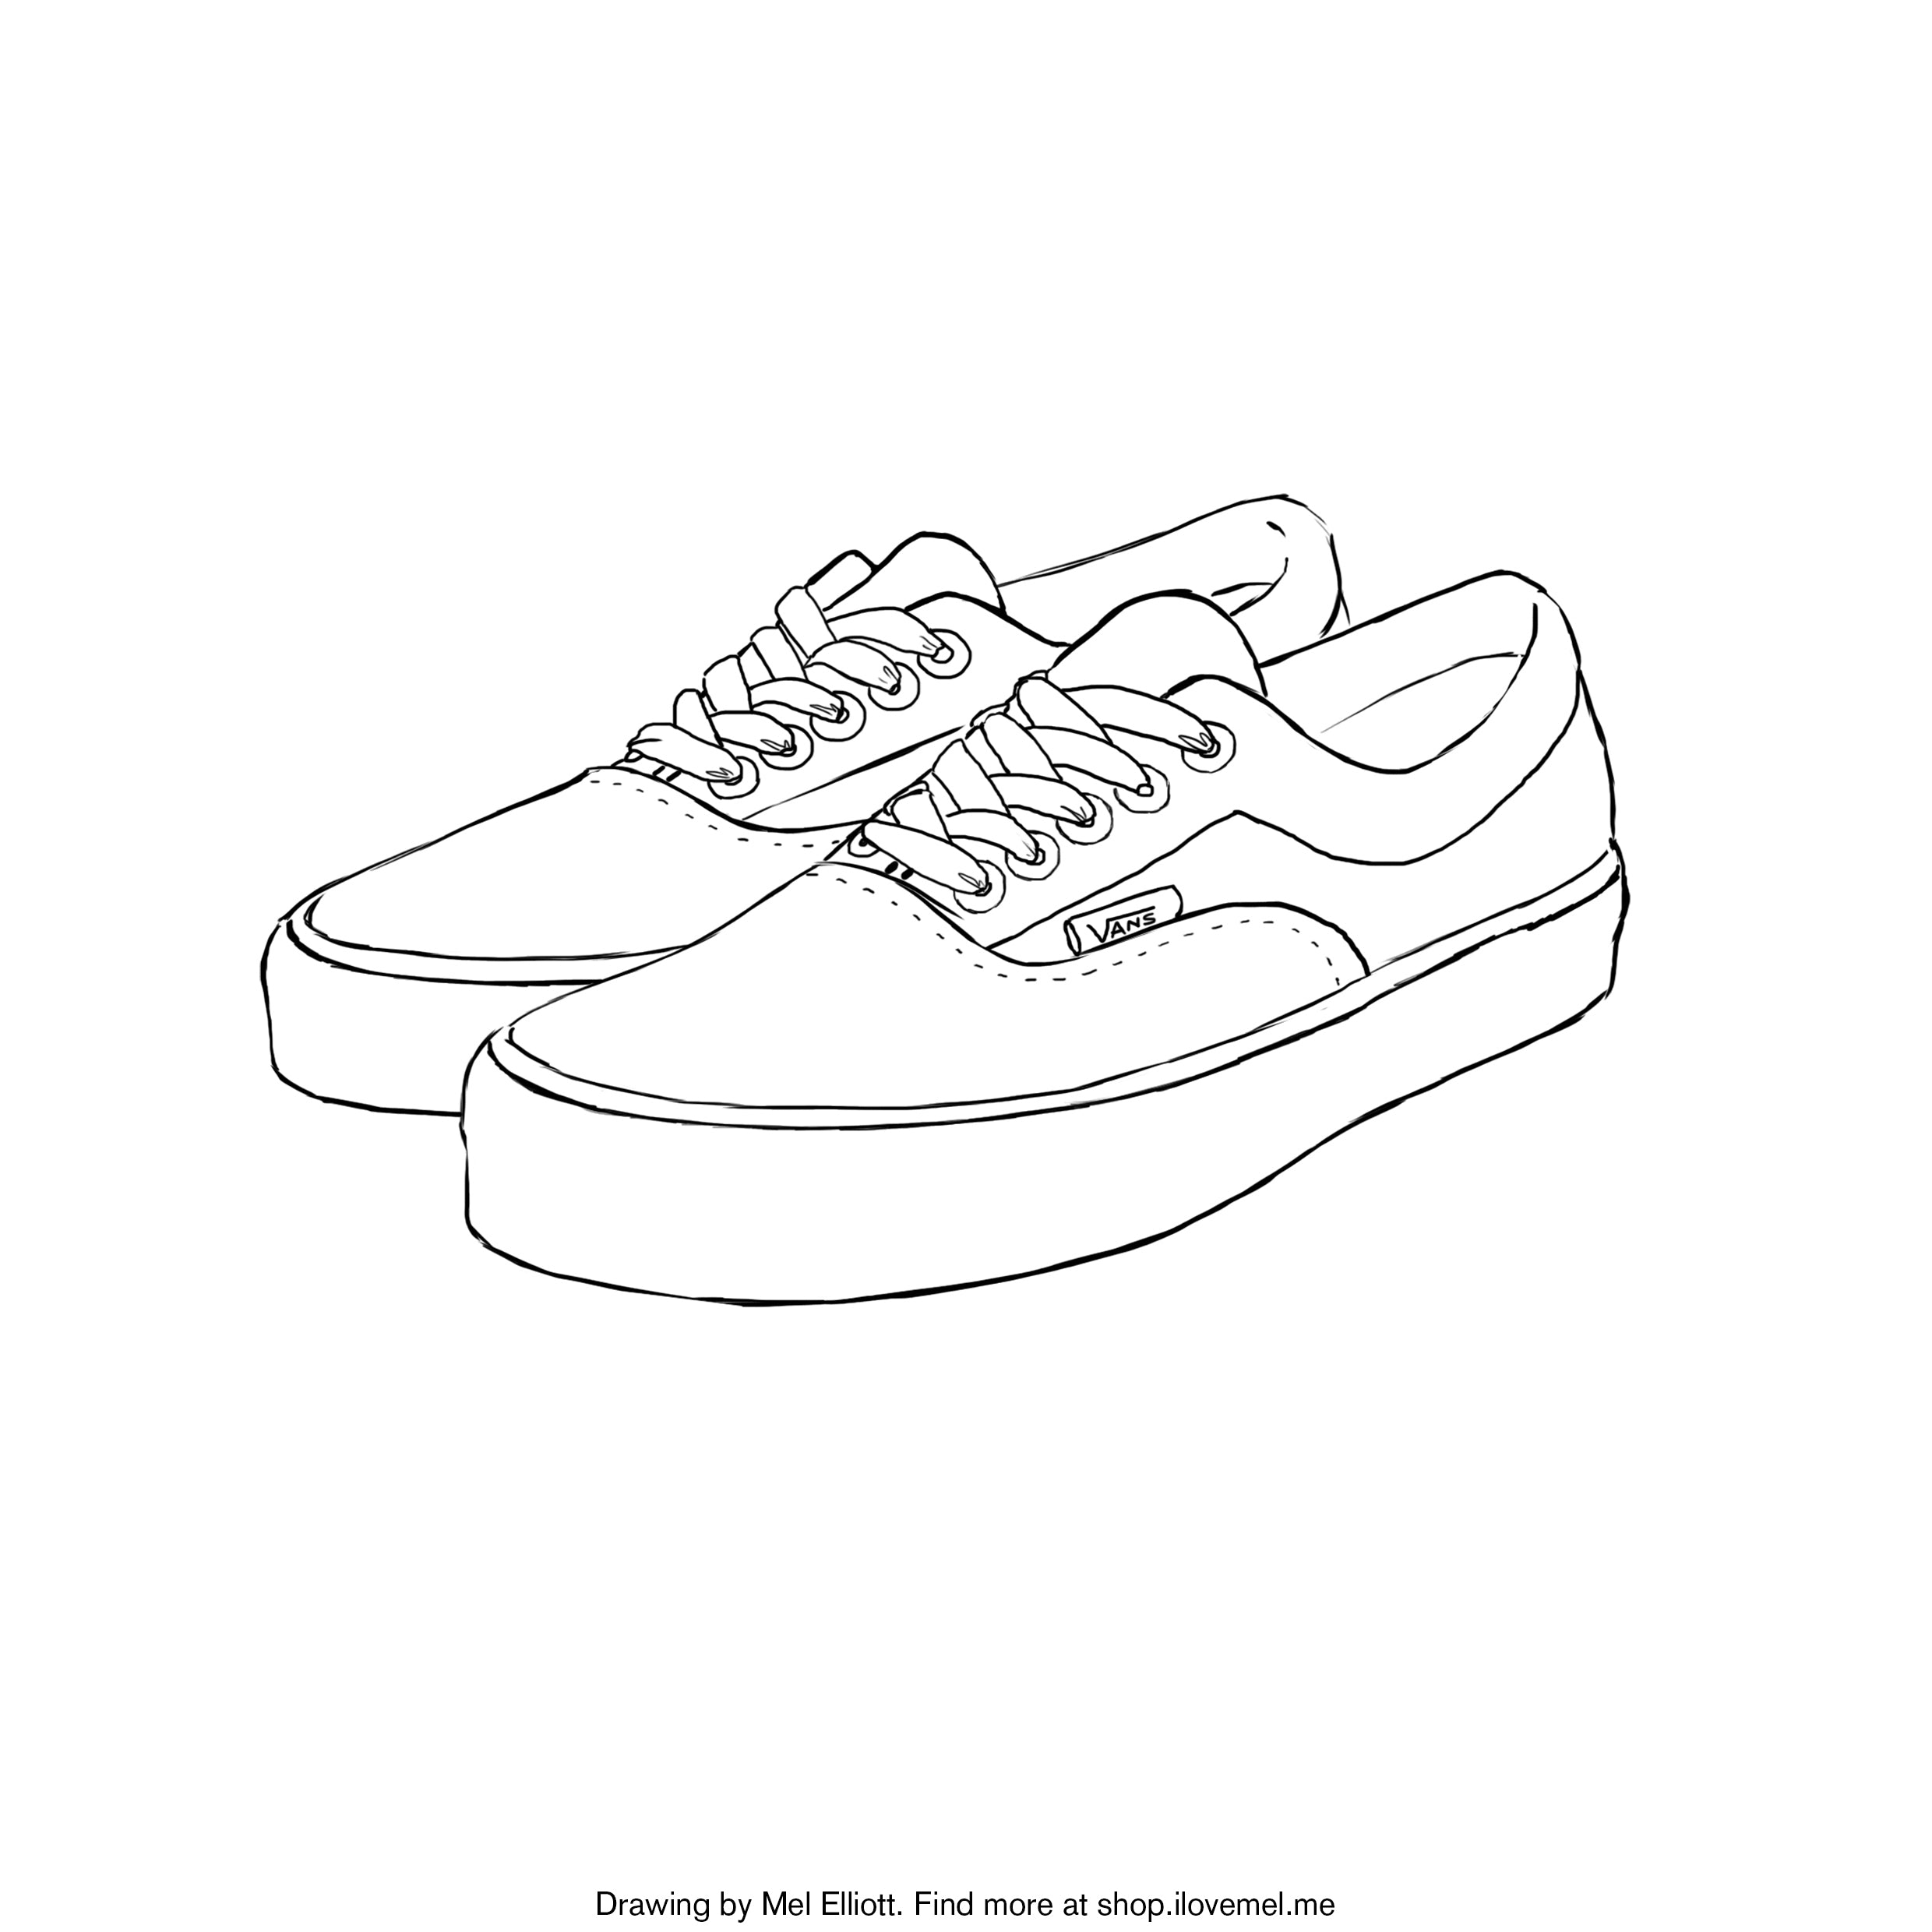 15612864 Vans as well Wooden Shoes besides Ayakkab C4 B1 Ba C4 9Fc C4 B1kl C4 B1 Moda Giyim Tarz C4 B1 145695 further Stock Photography Shoes Silhouette Set Four Pairs Print Eps Image33641342 additionally Outline Of A Shoe. on shoe outline clip art